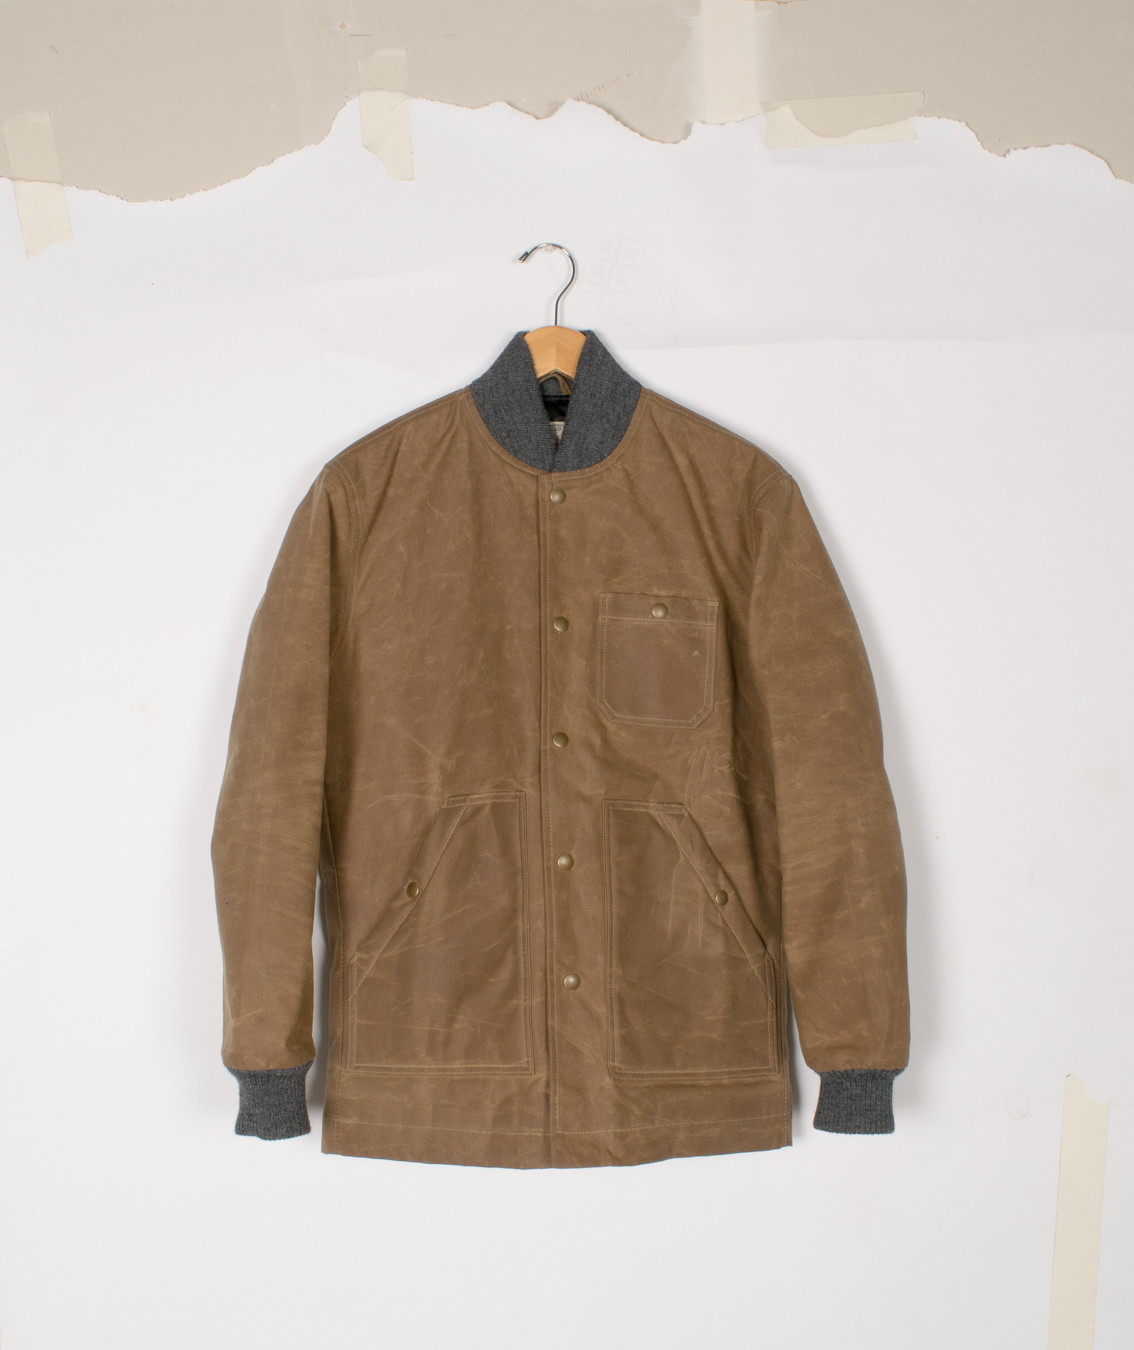 Ribbed Field Coat - Field Tan Waxed Canvas - $460